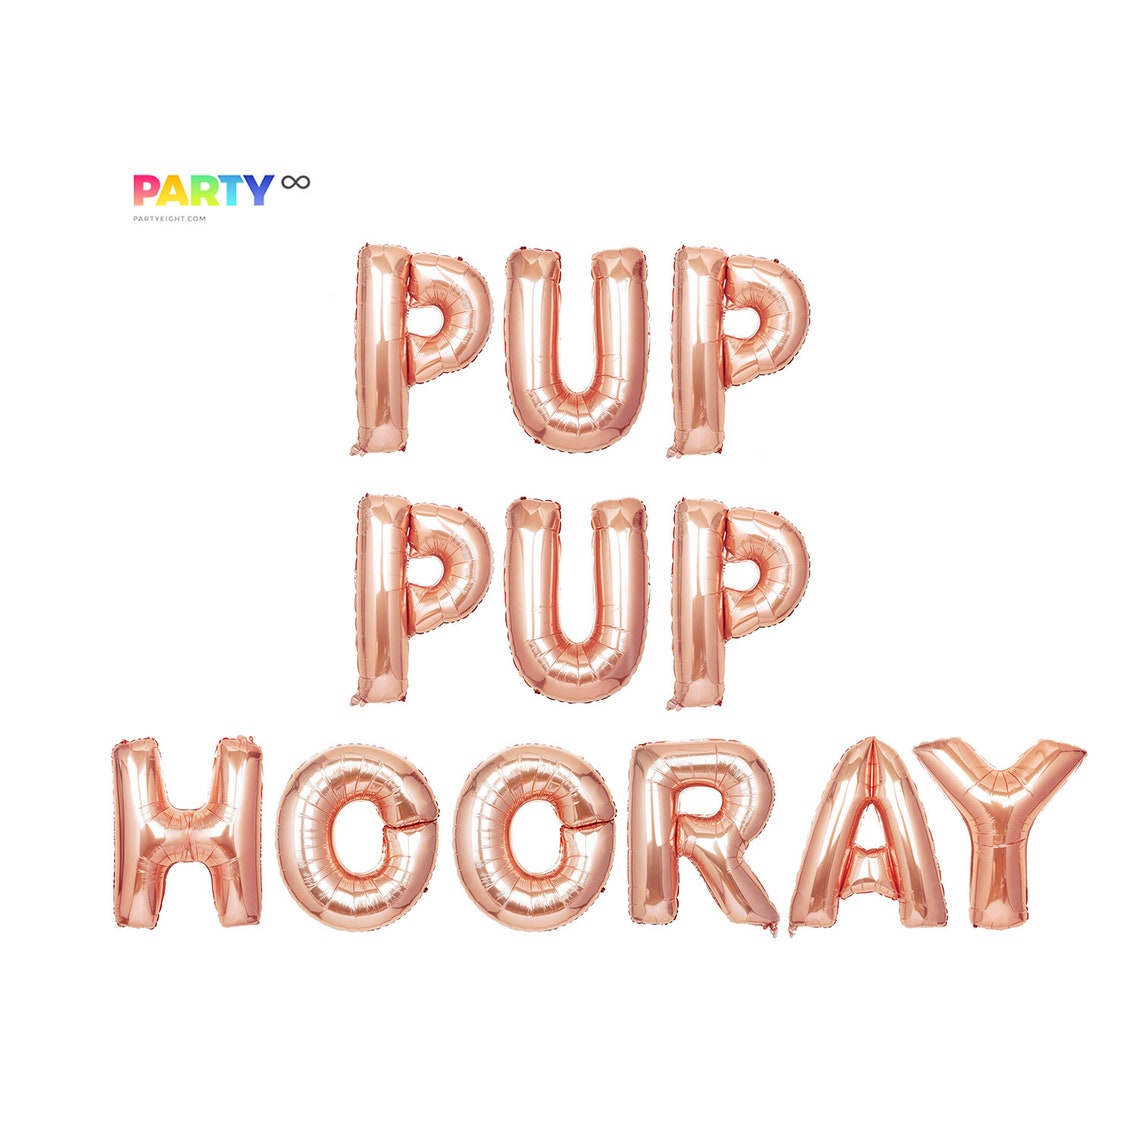 Pup Hooray Puppy Birthday Party Decoration  Puppy Dog Rose gold